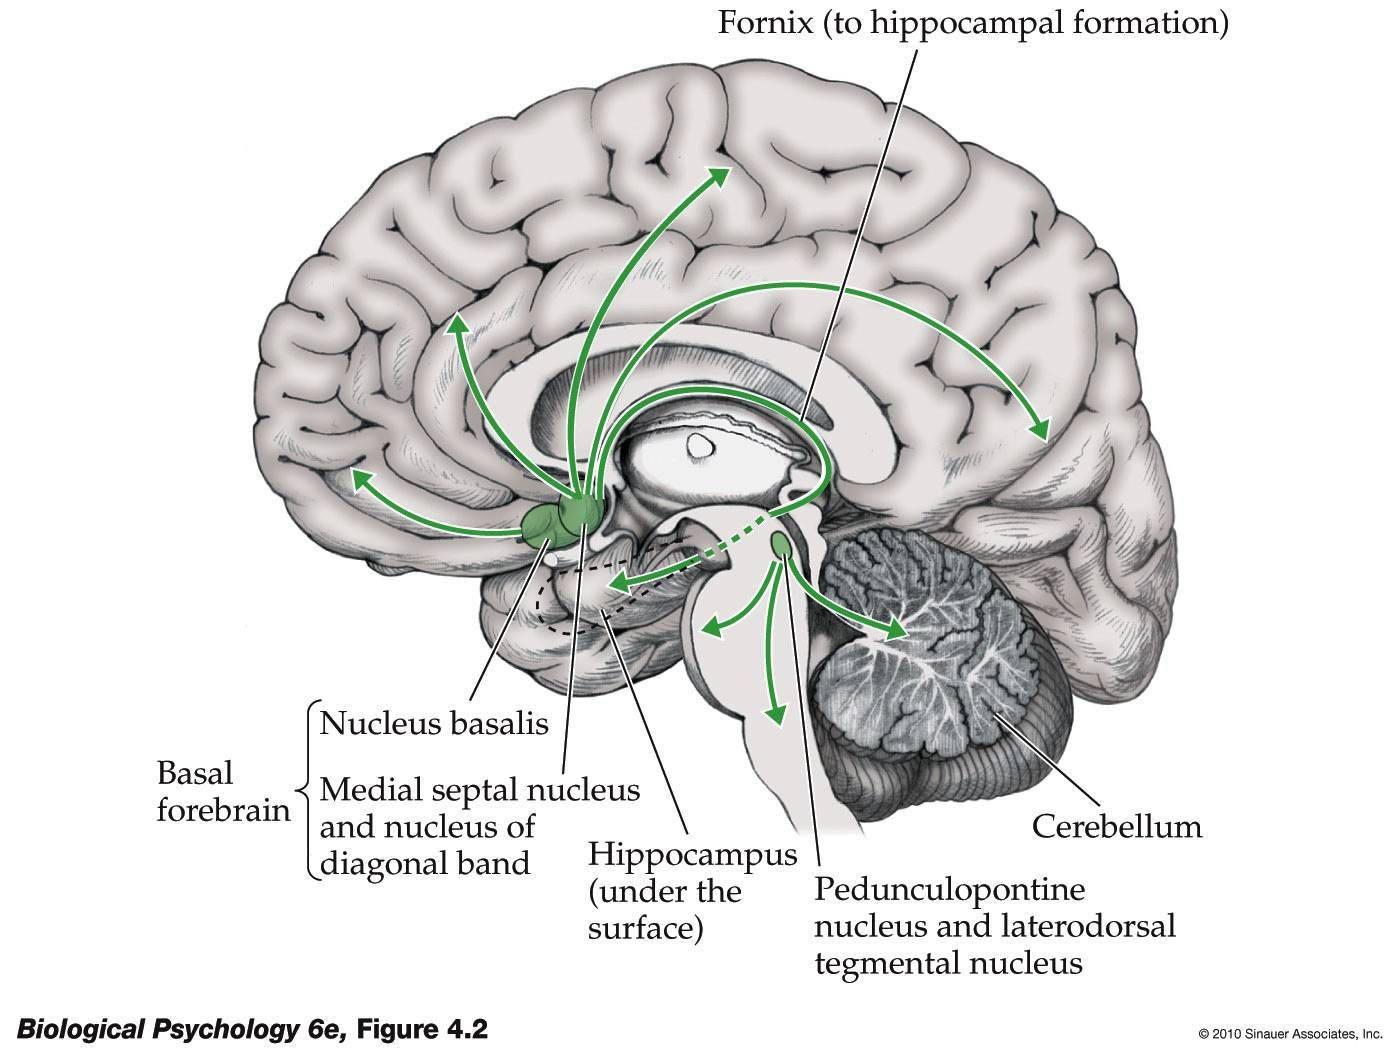 Cells of Acetylcholine Orgin: Dorsolateral Pons, Basal Forebrain ...